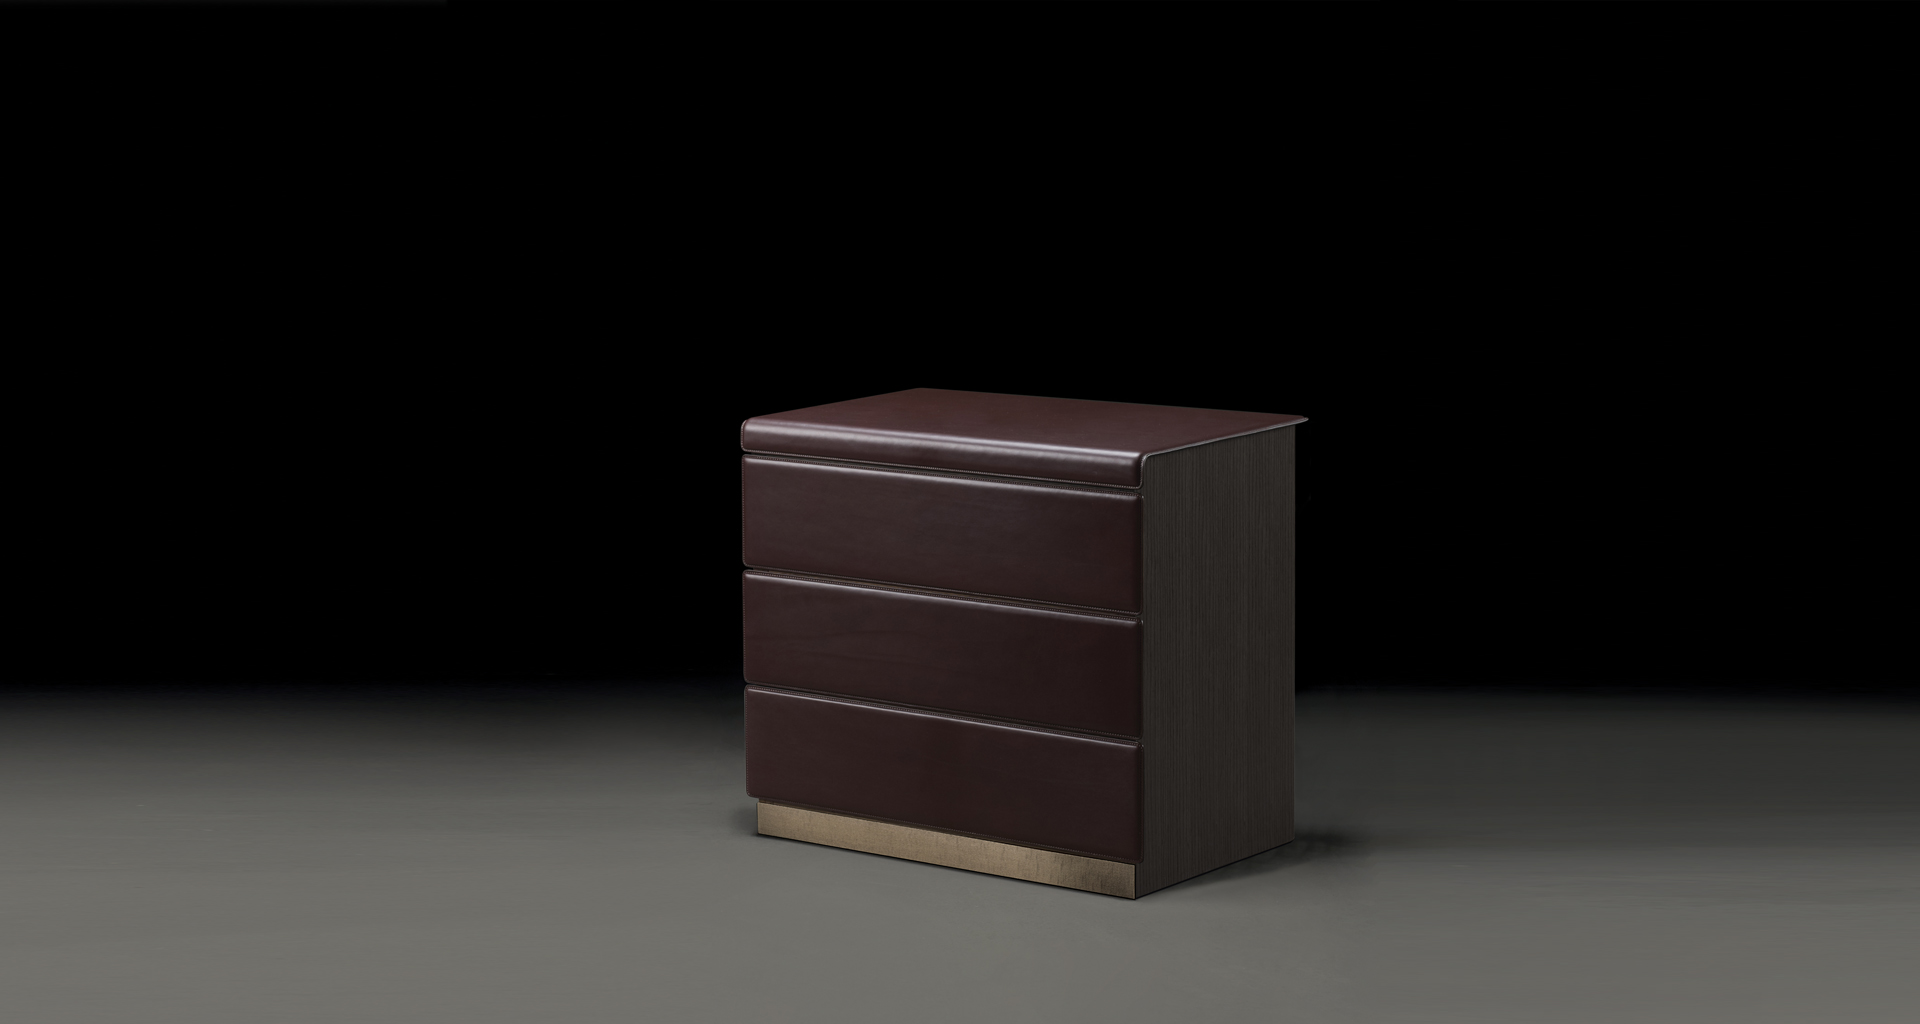 Promemoria Orione Wooden Bedside Table